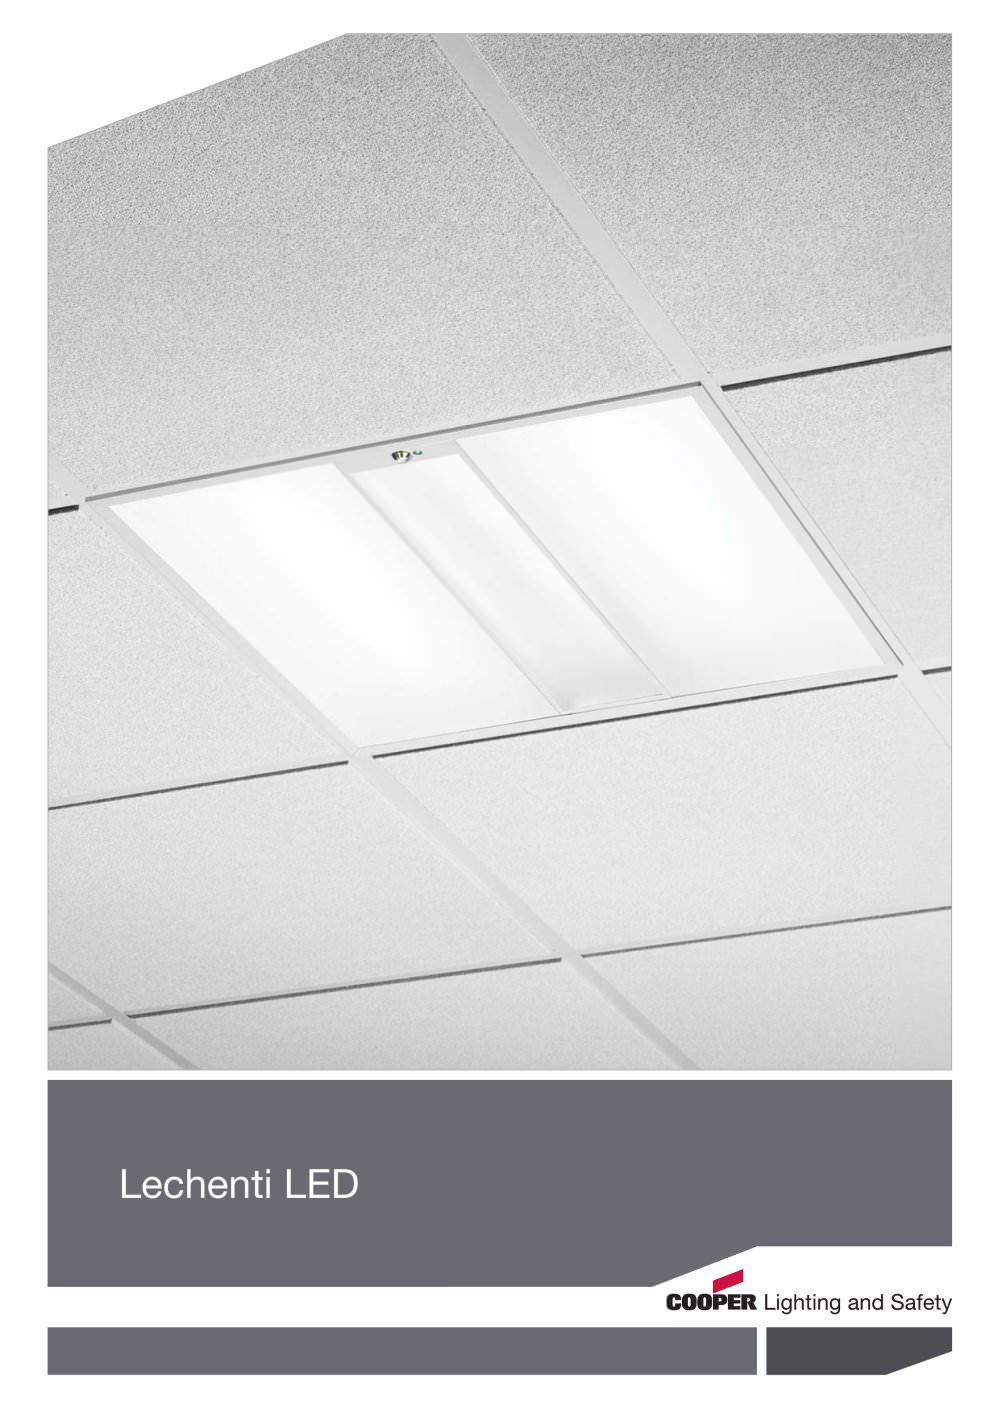 lechenti led cooper lighting and safety pdf catalogue